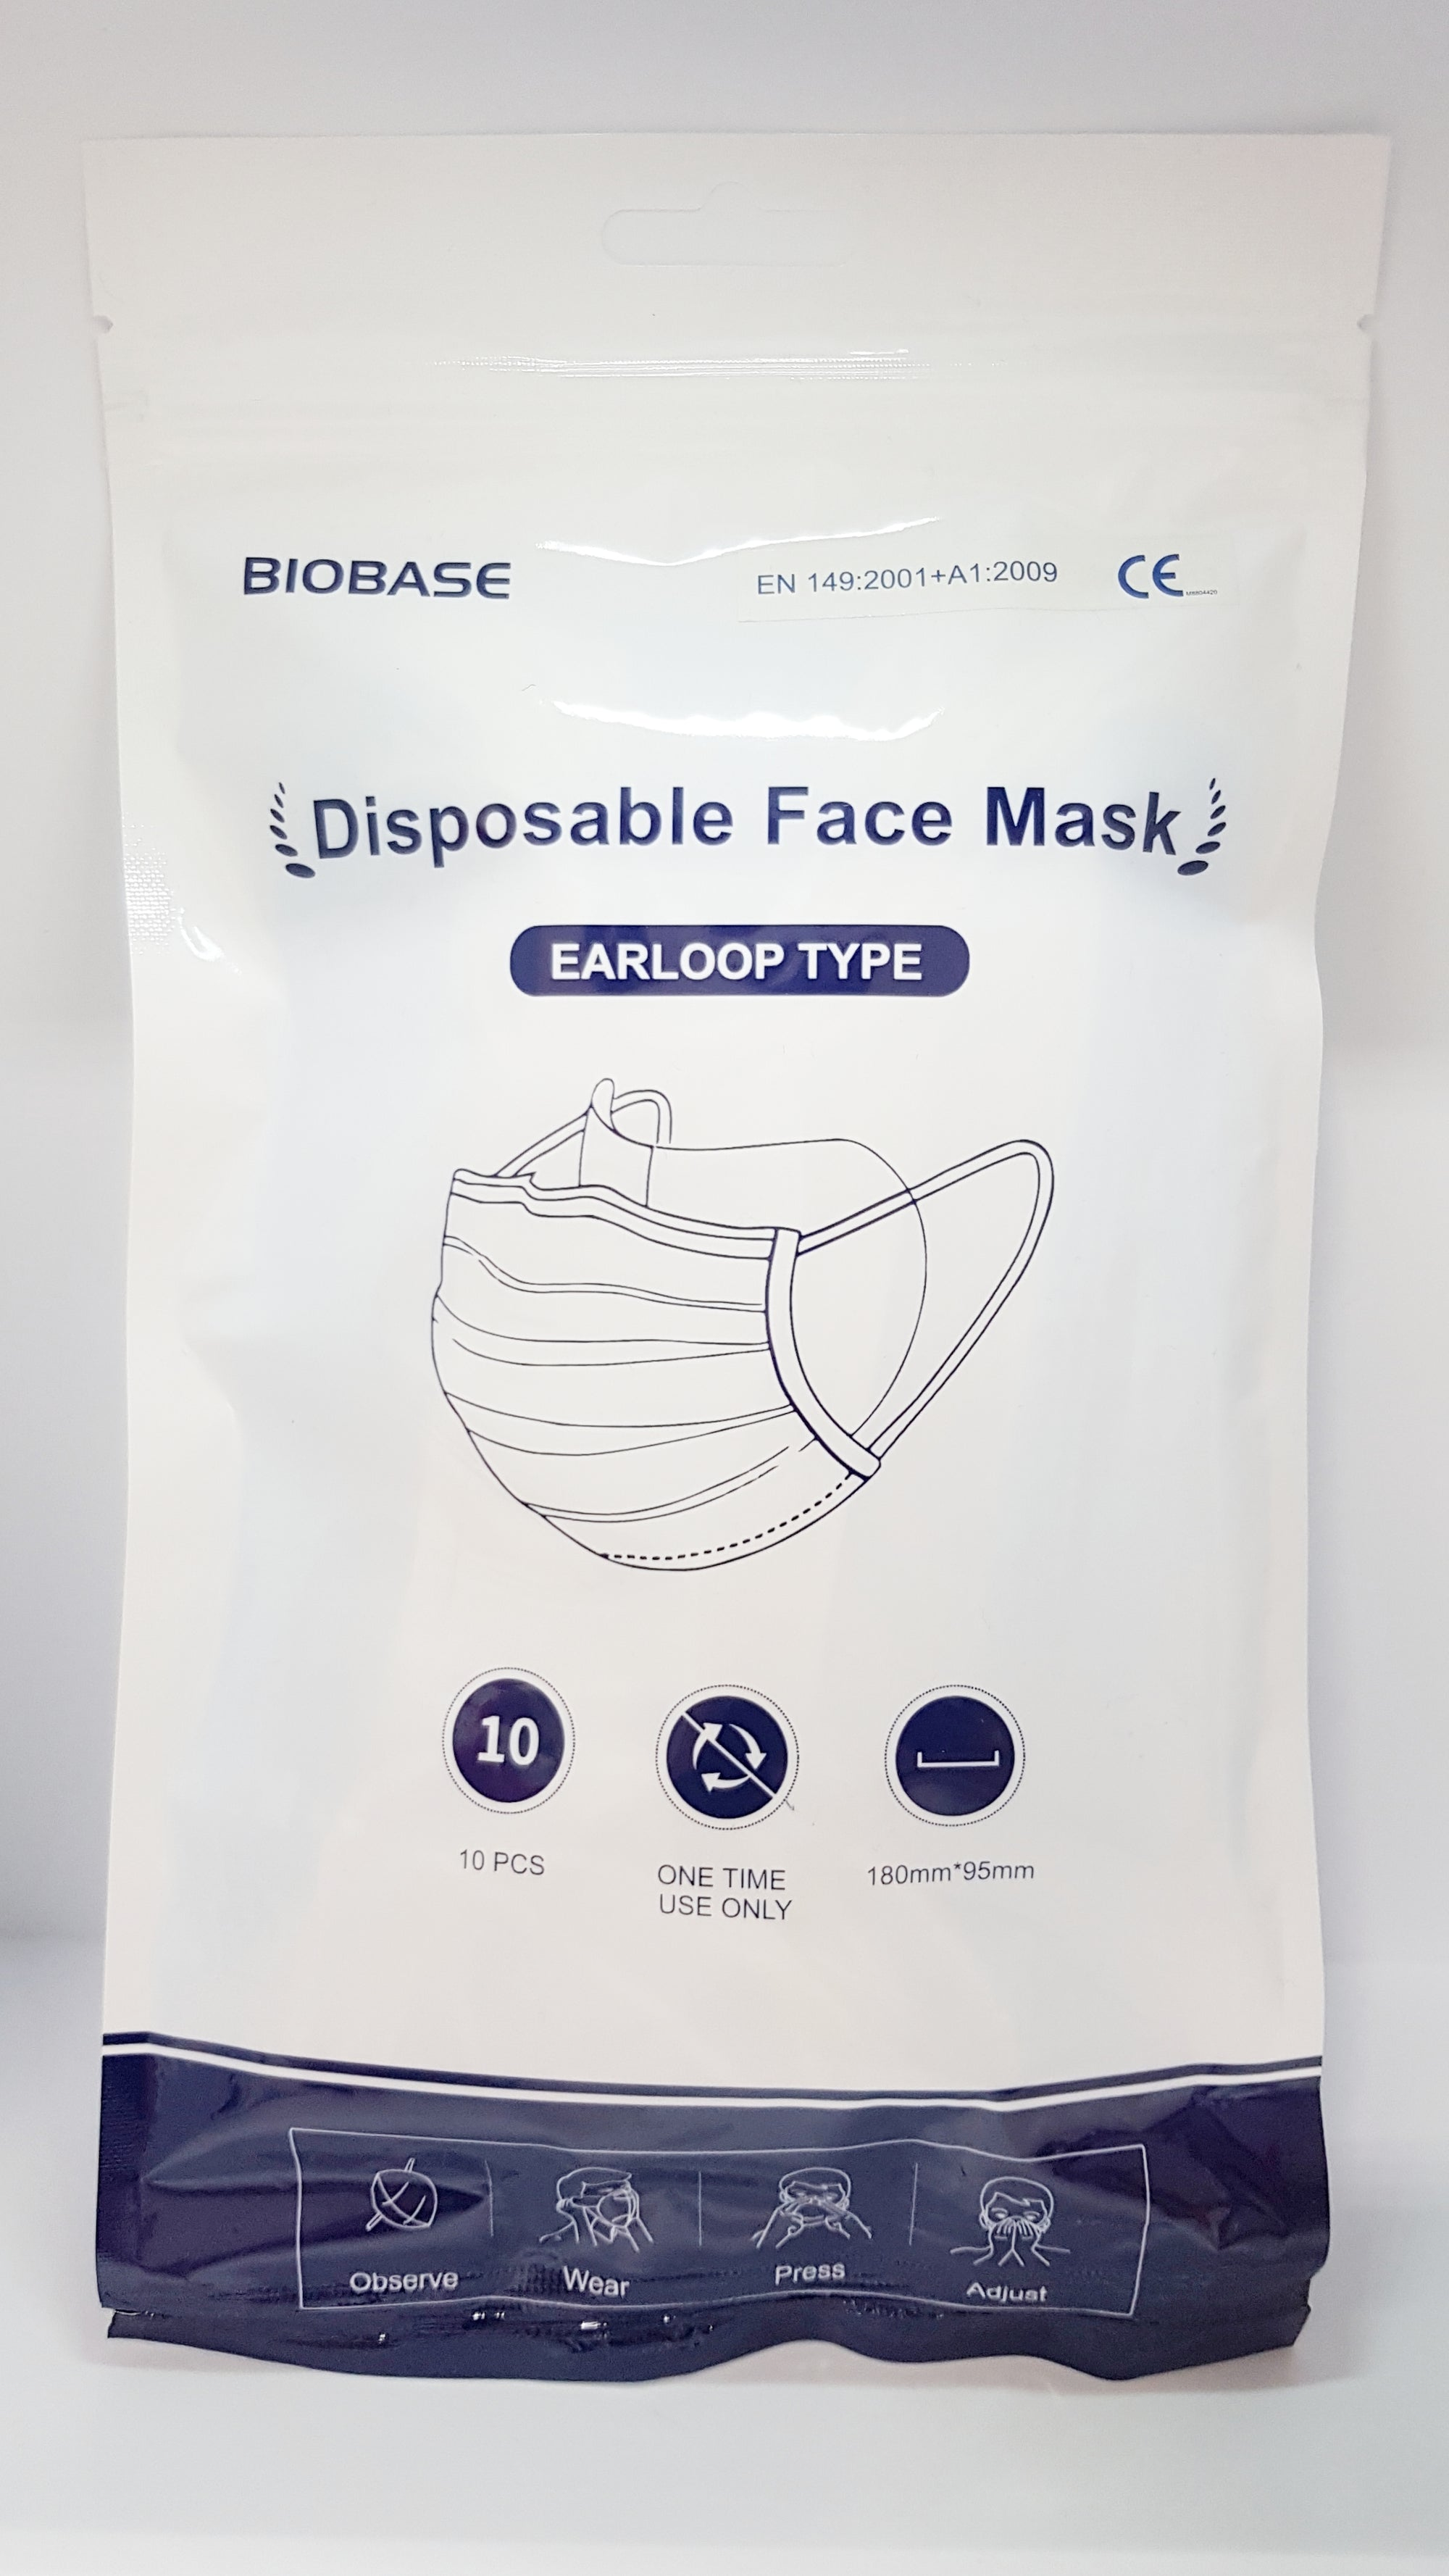 BIOBASE Disposable 3-ply Face Mask 10-pack x10 packs